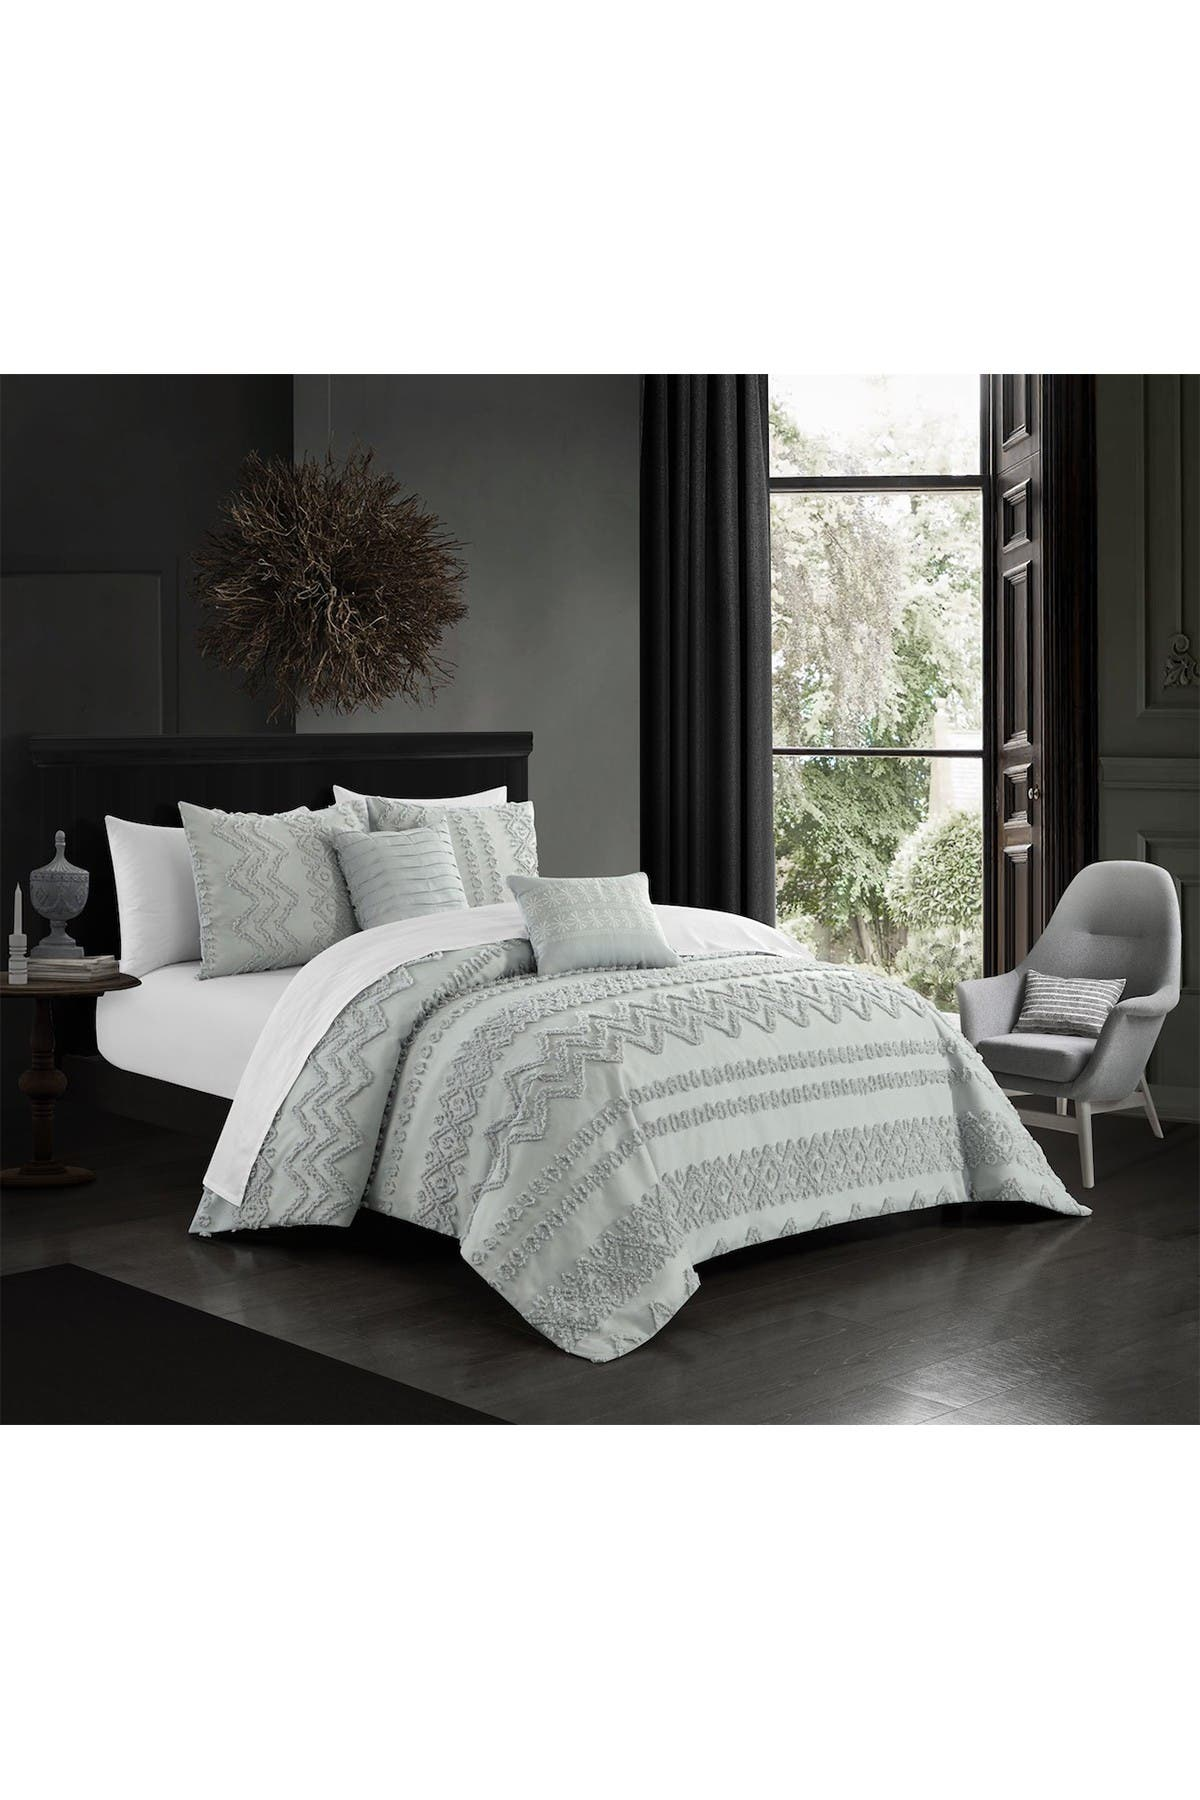 Chic Home Bedding Jenson Jacquard Geometric Design Queen Comforter Set Grey 5 Piece Set Nordstrom Rack